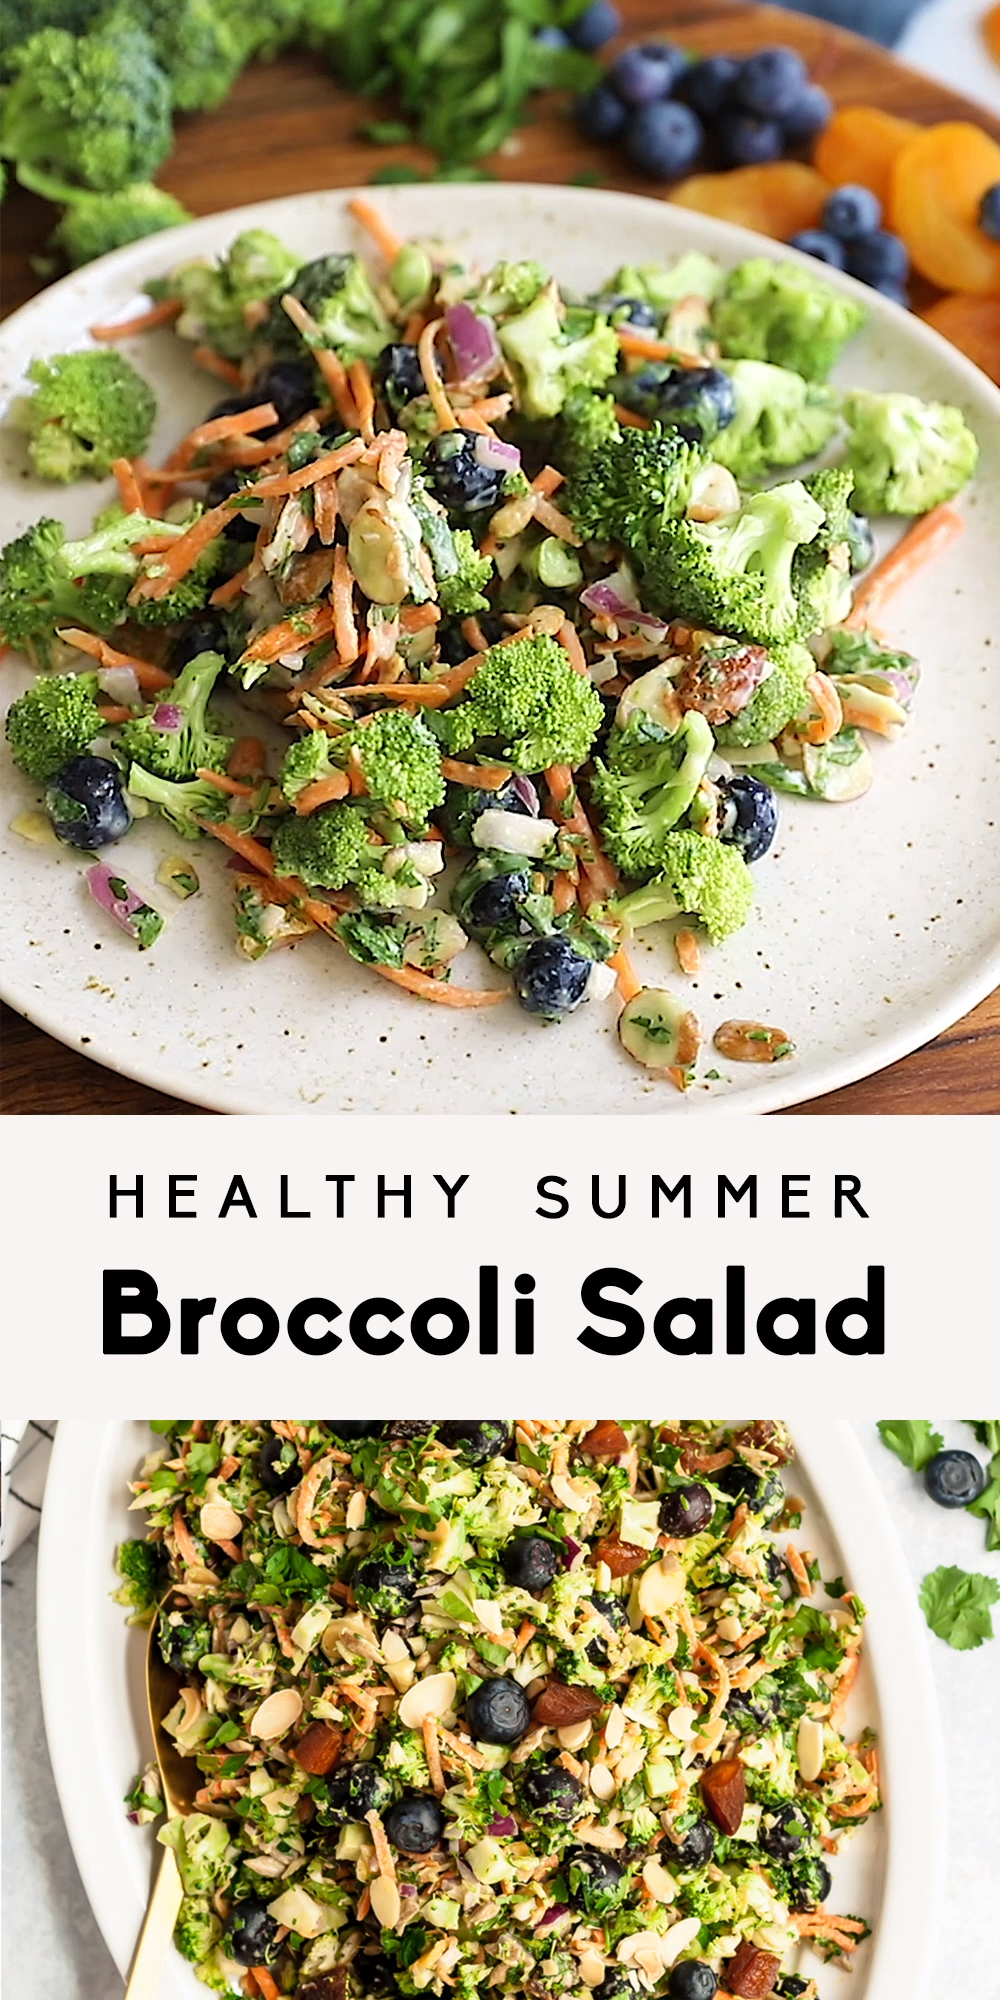 Healthy Summer Broccoli Salad #foodsides